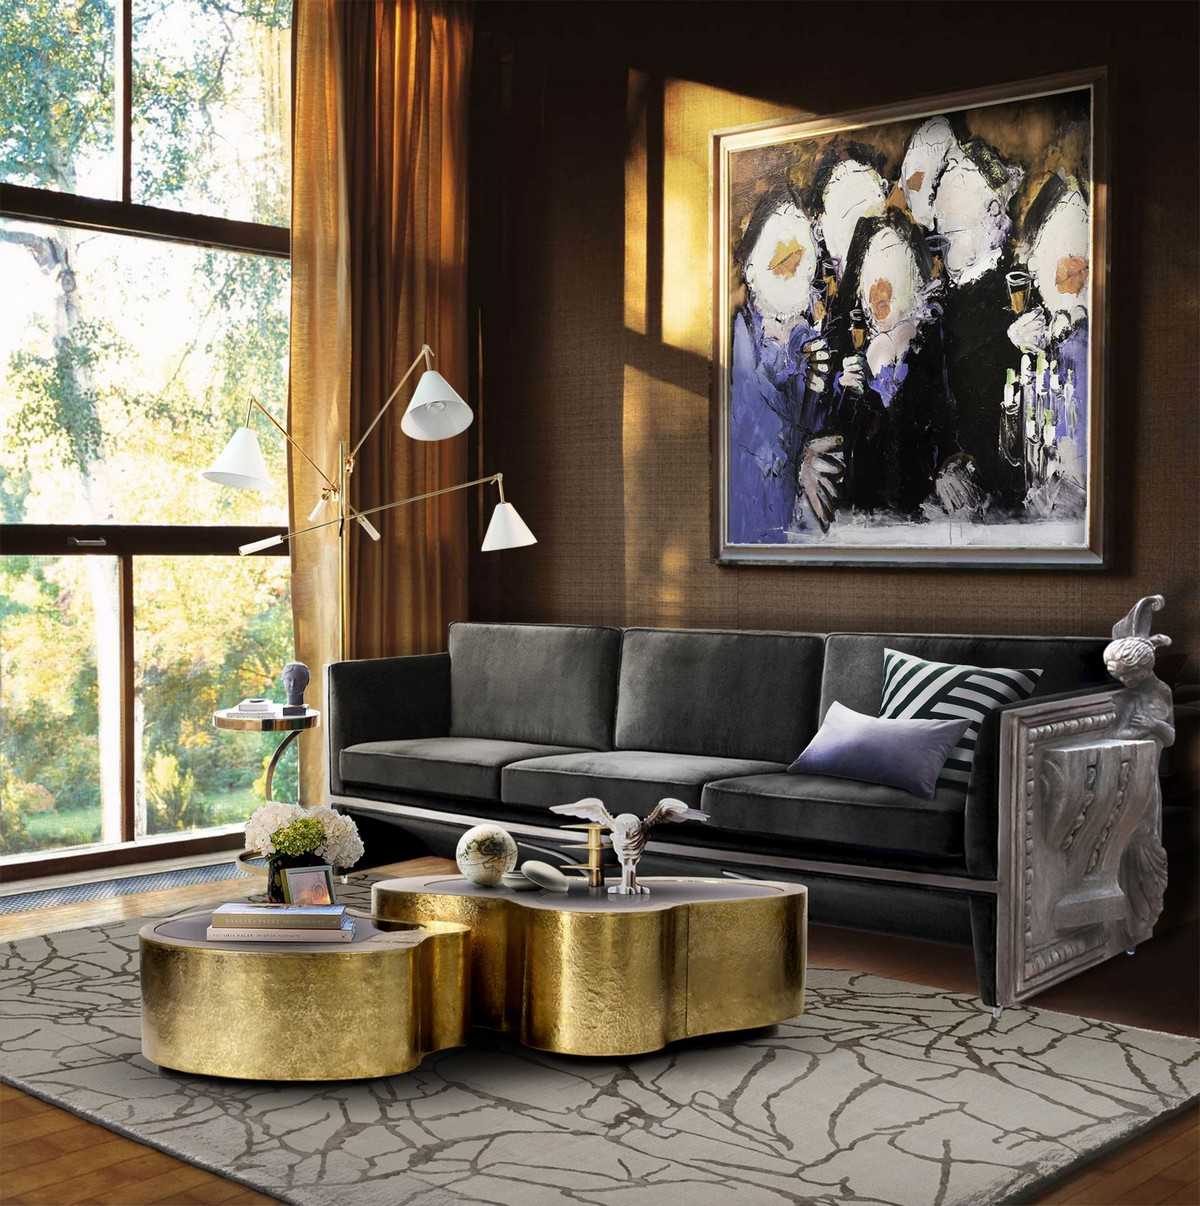 living room, living room ideas, living room decor, center tables, modern center tables, exclusive center tables, exclusive design, center tables design,  modern center tables Modern Center Tables To Enlight Your Living Room 61ad9f127e8082aee9dc928e104cc108